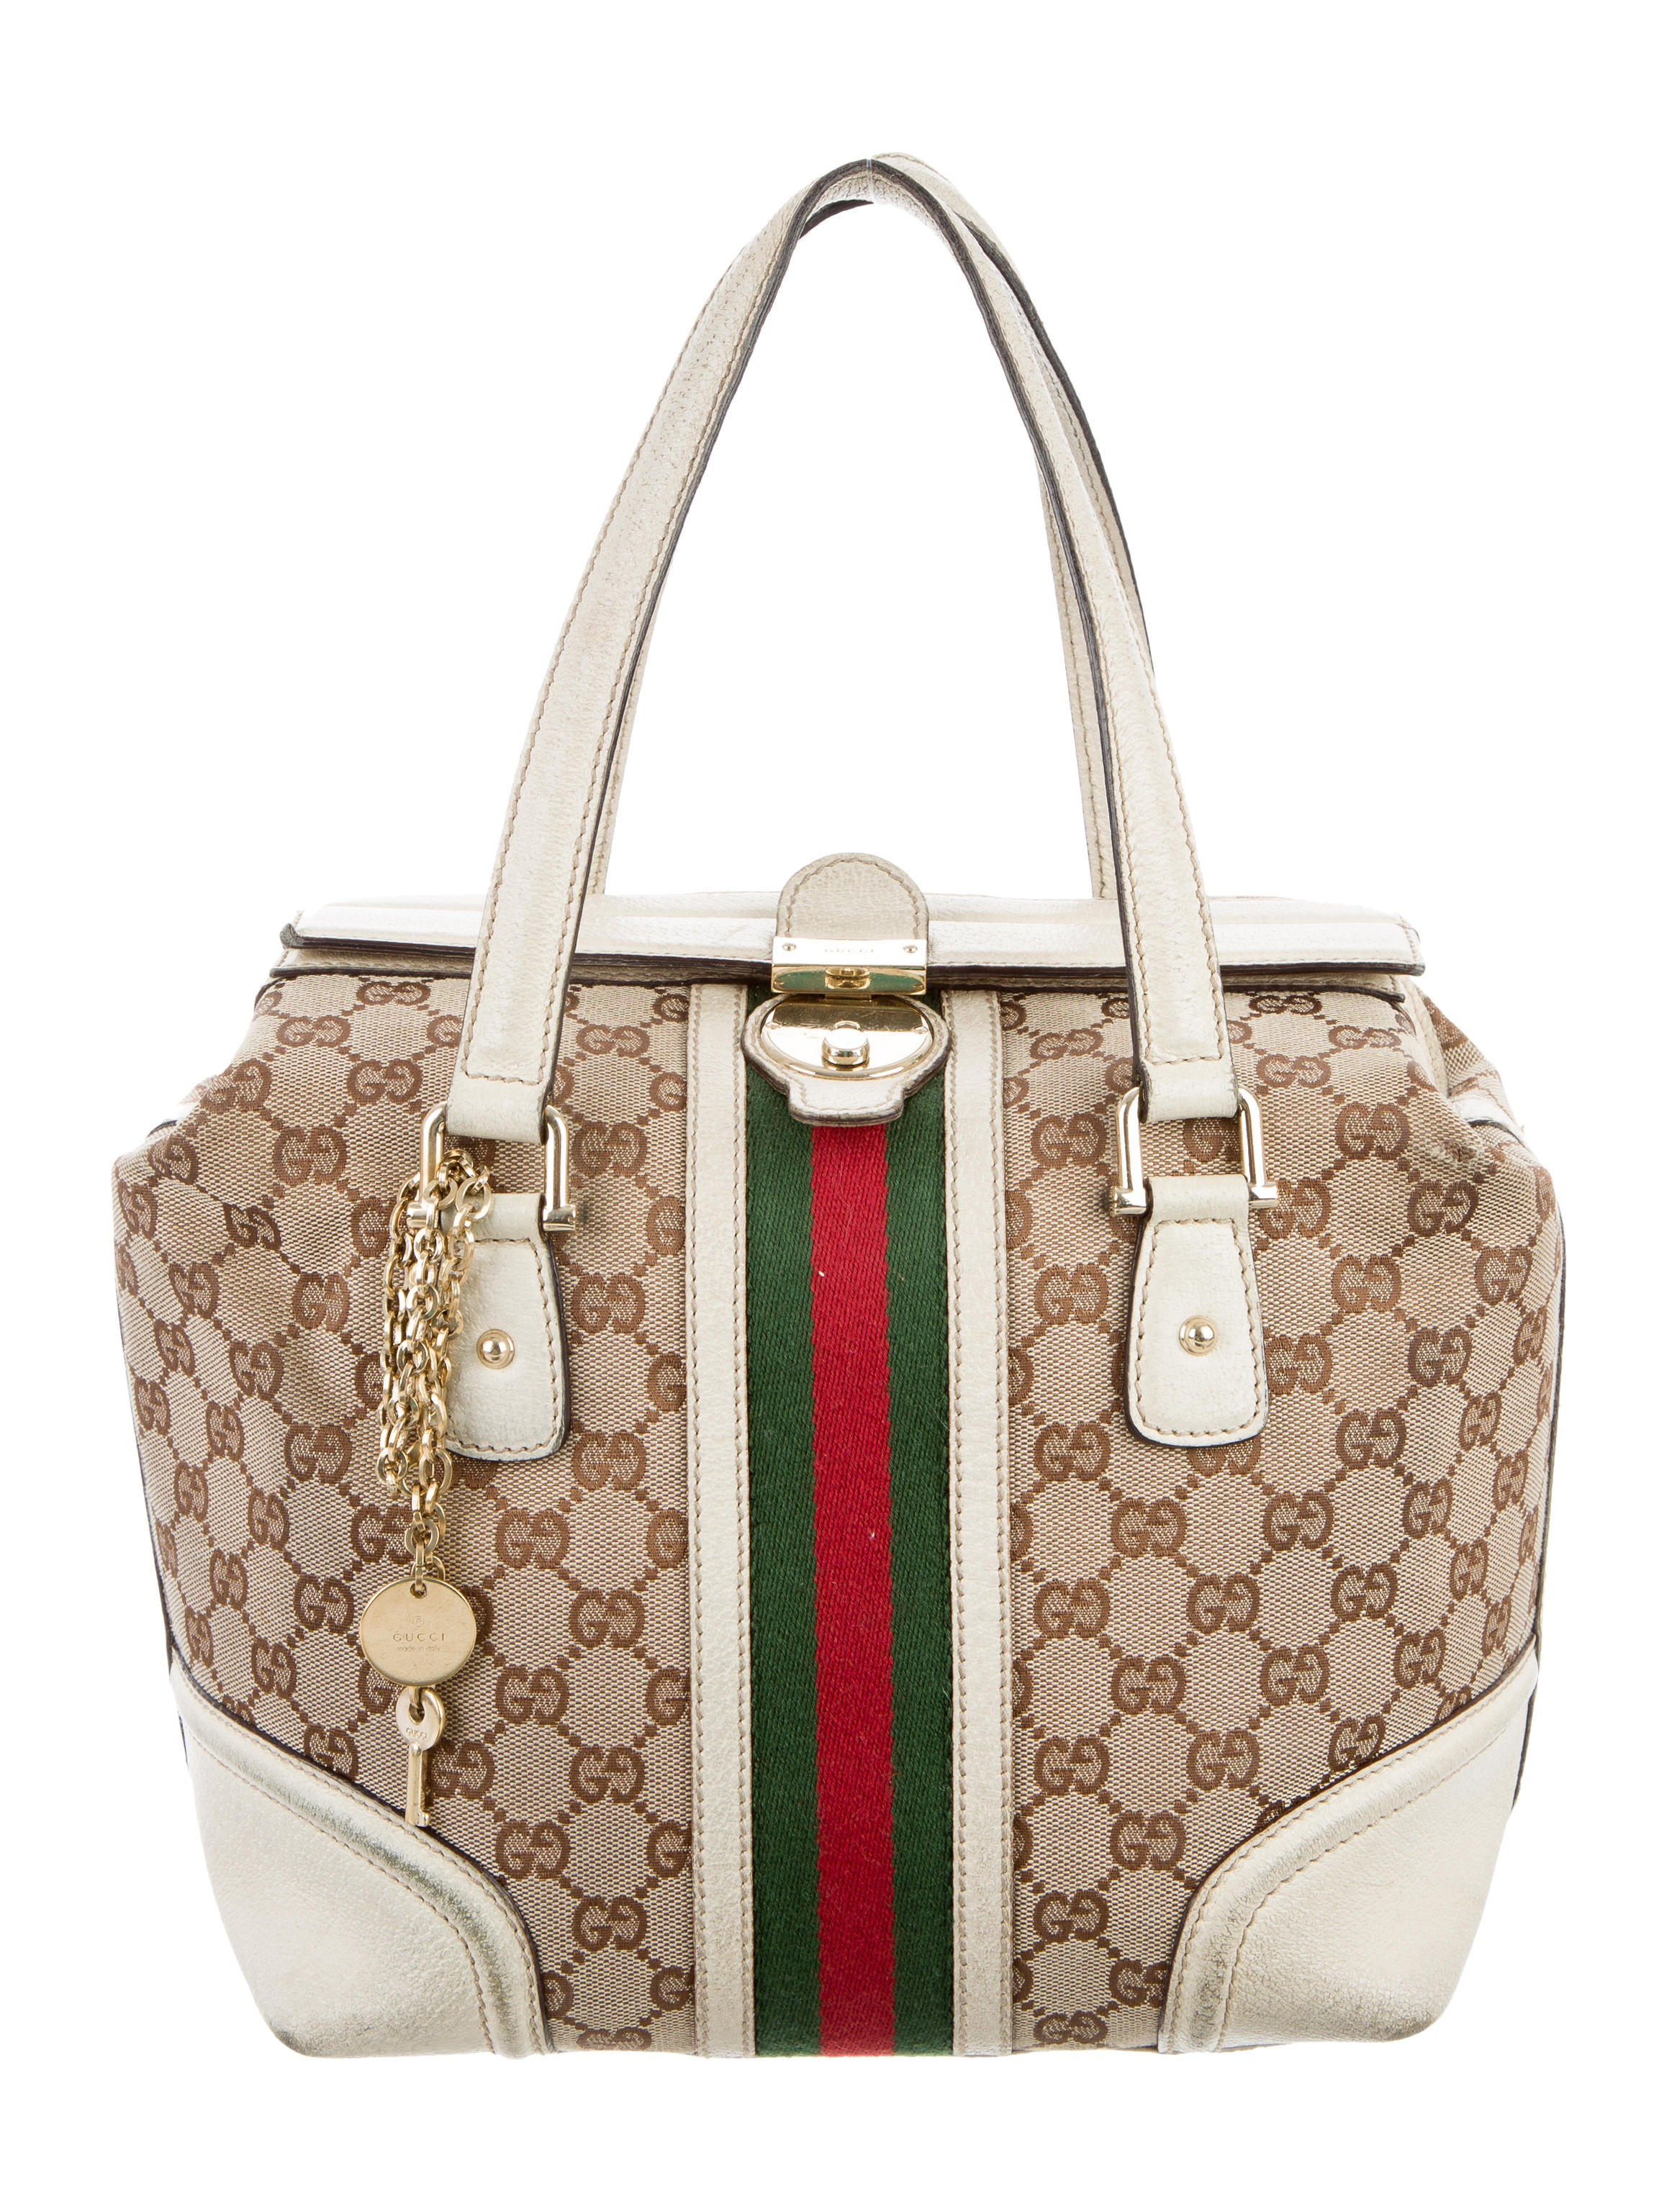 a64caa1c2e79 Gucci Mini Boston Bag Size | Stanford Center for Opportunity Policy ...